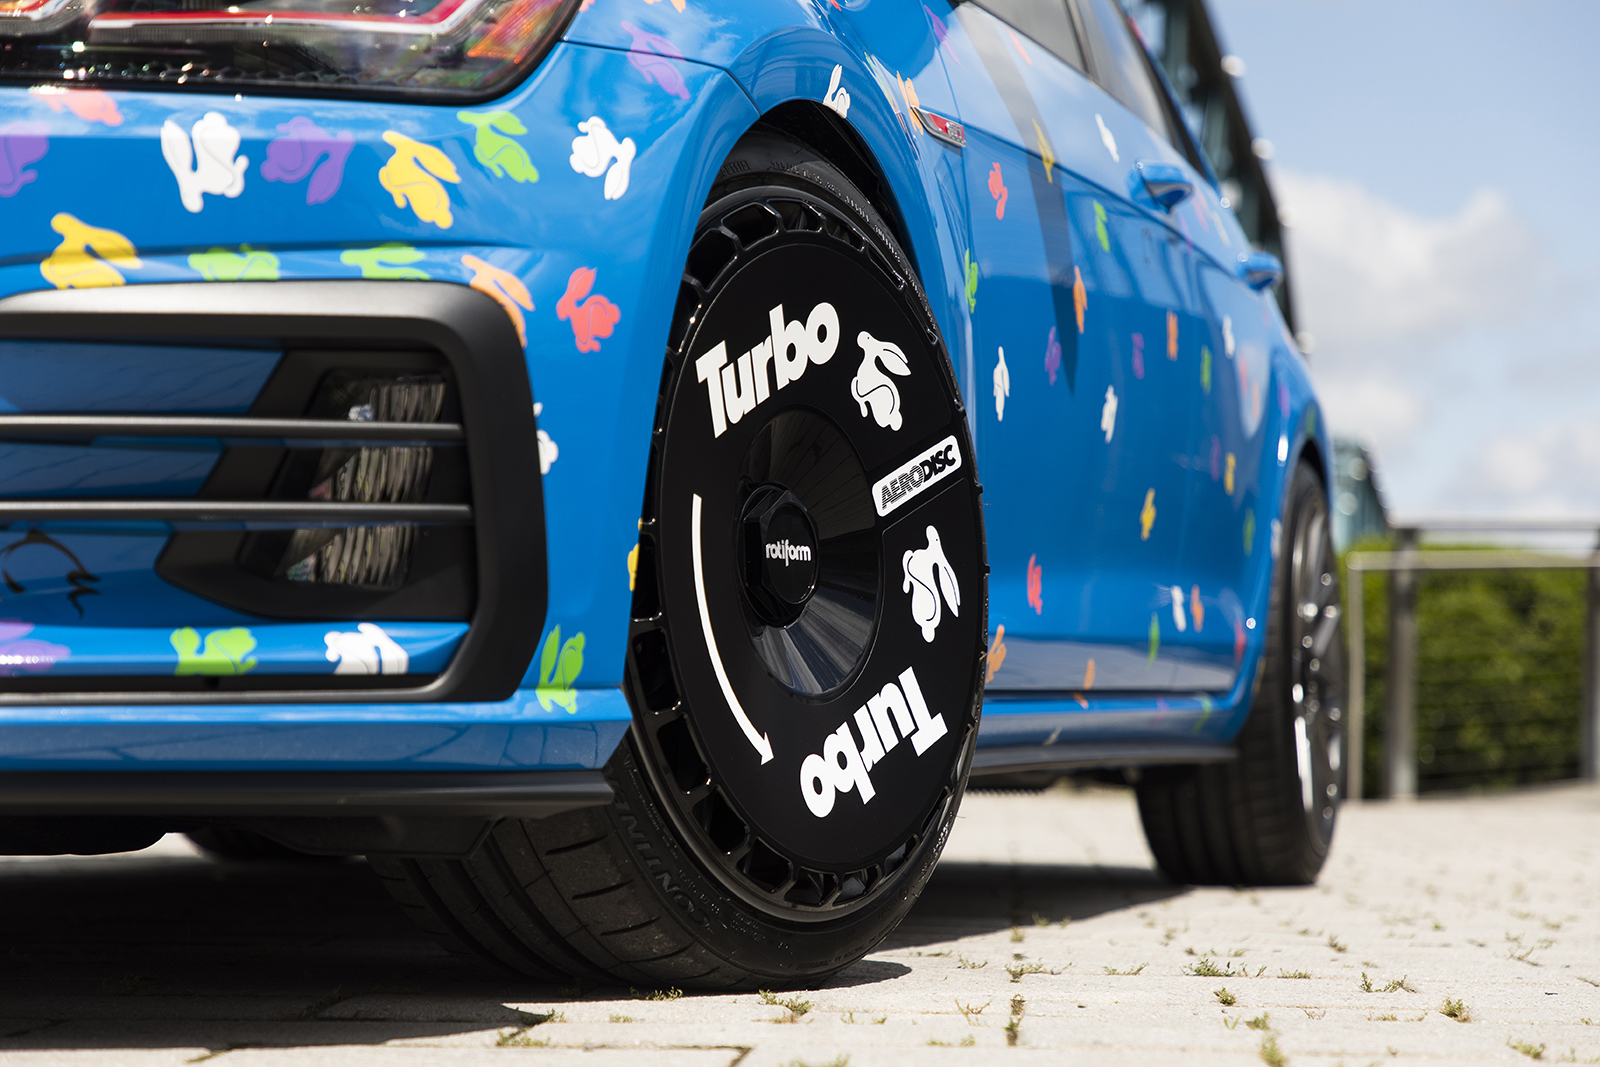 Golf_GTI_Rabbit_Confetti_Concept--9875